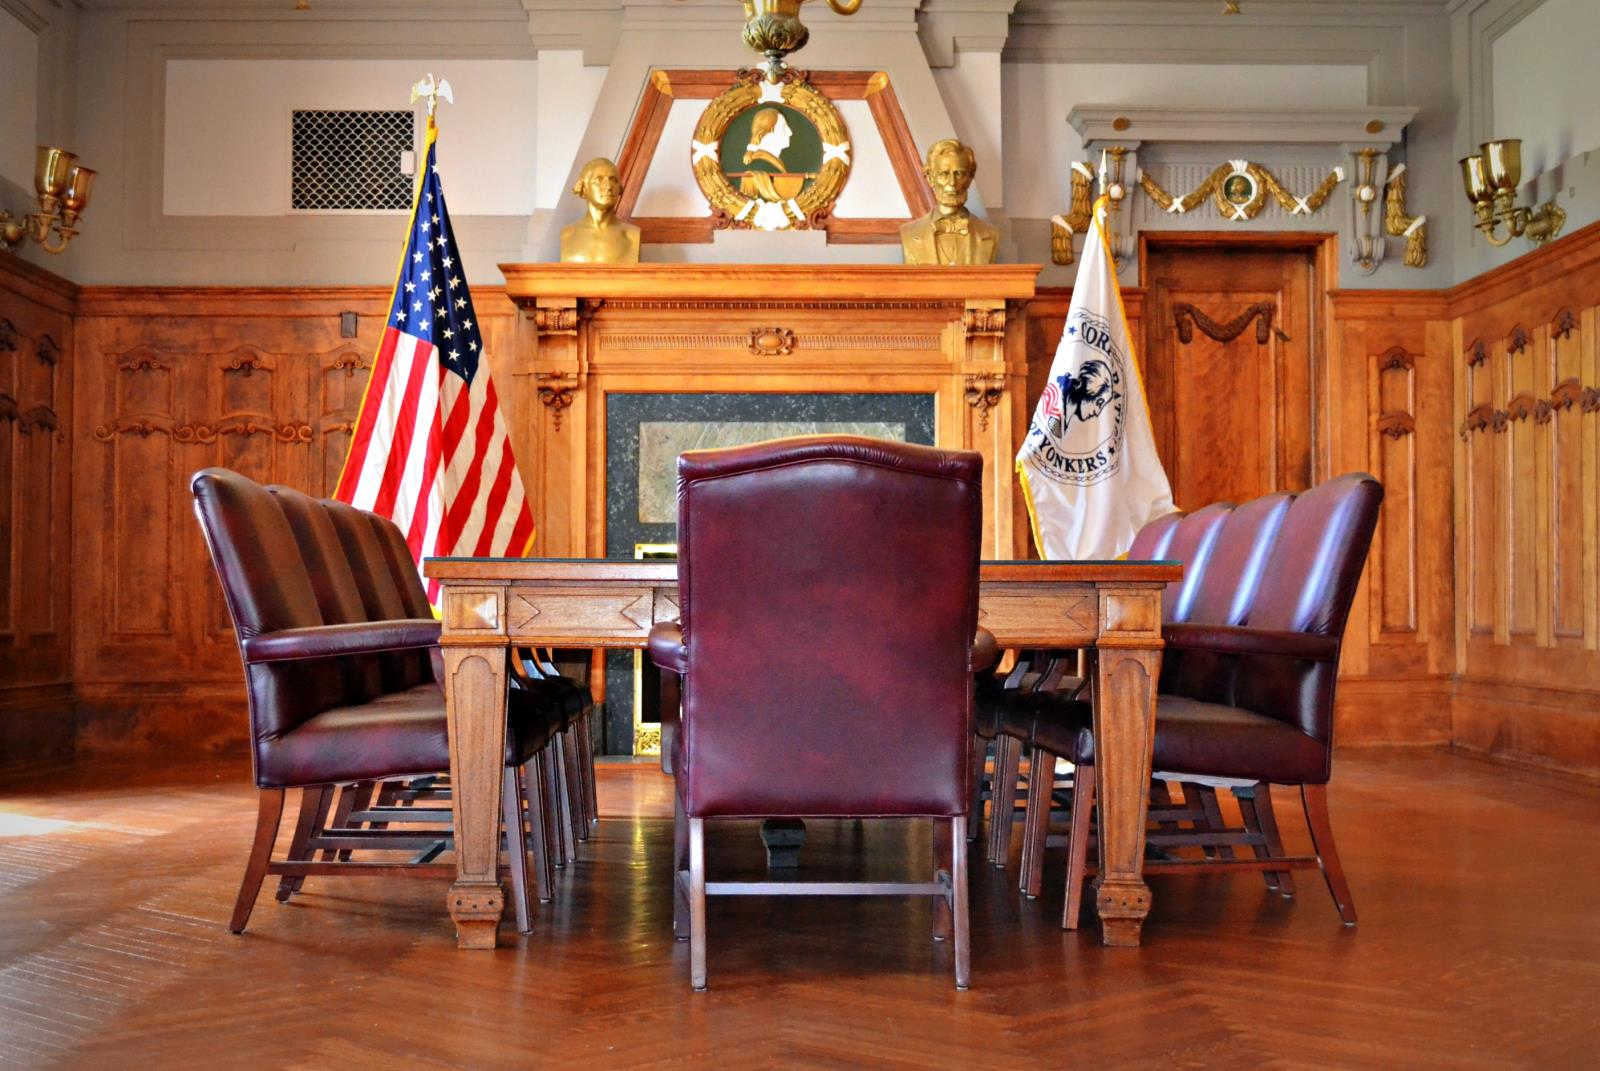 Mayor's Reception Room